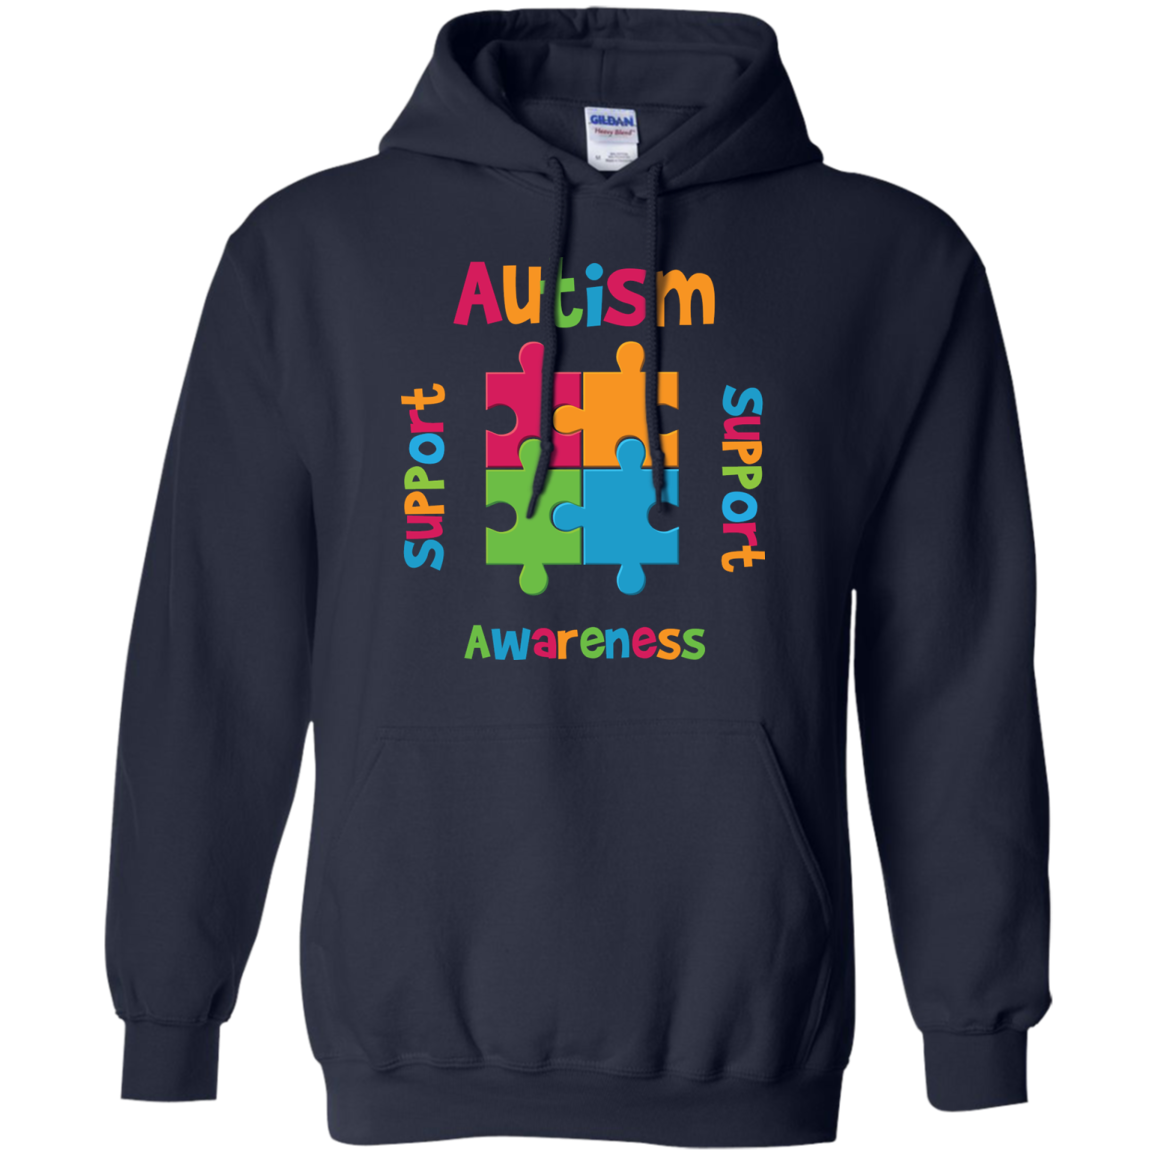 Autism Awareness T-SHIRTS HOODIES Support  Advocate  Love Educate - The Sun Cat